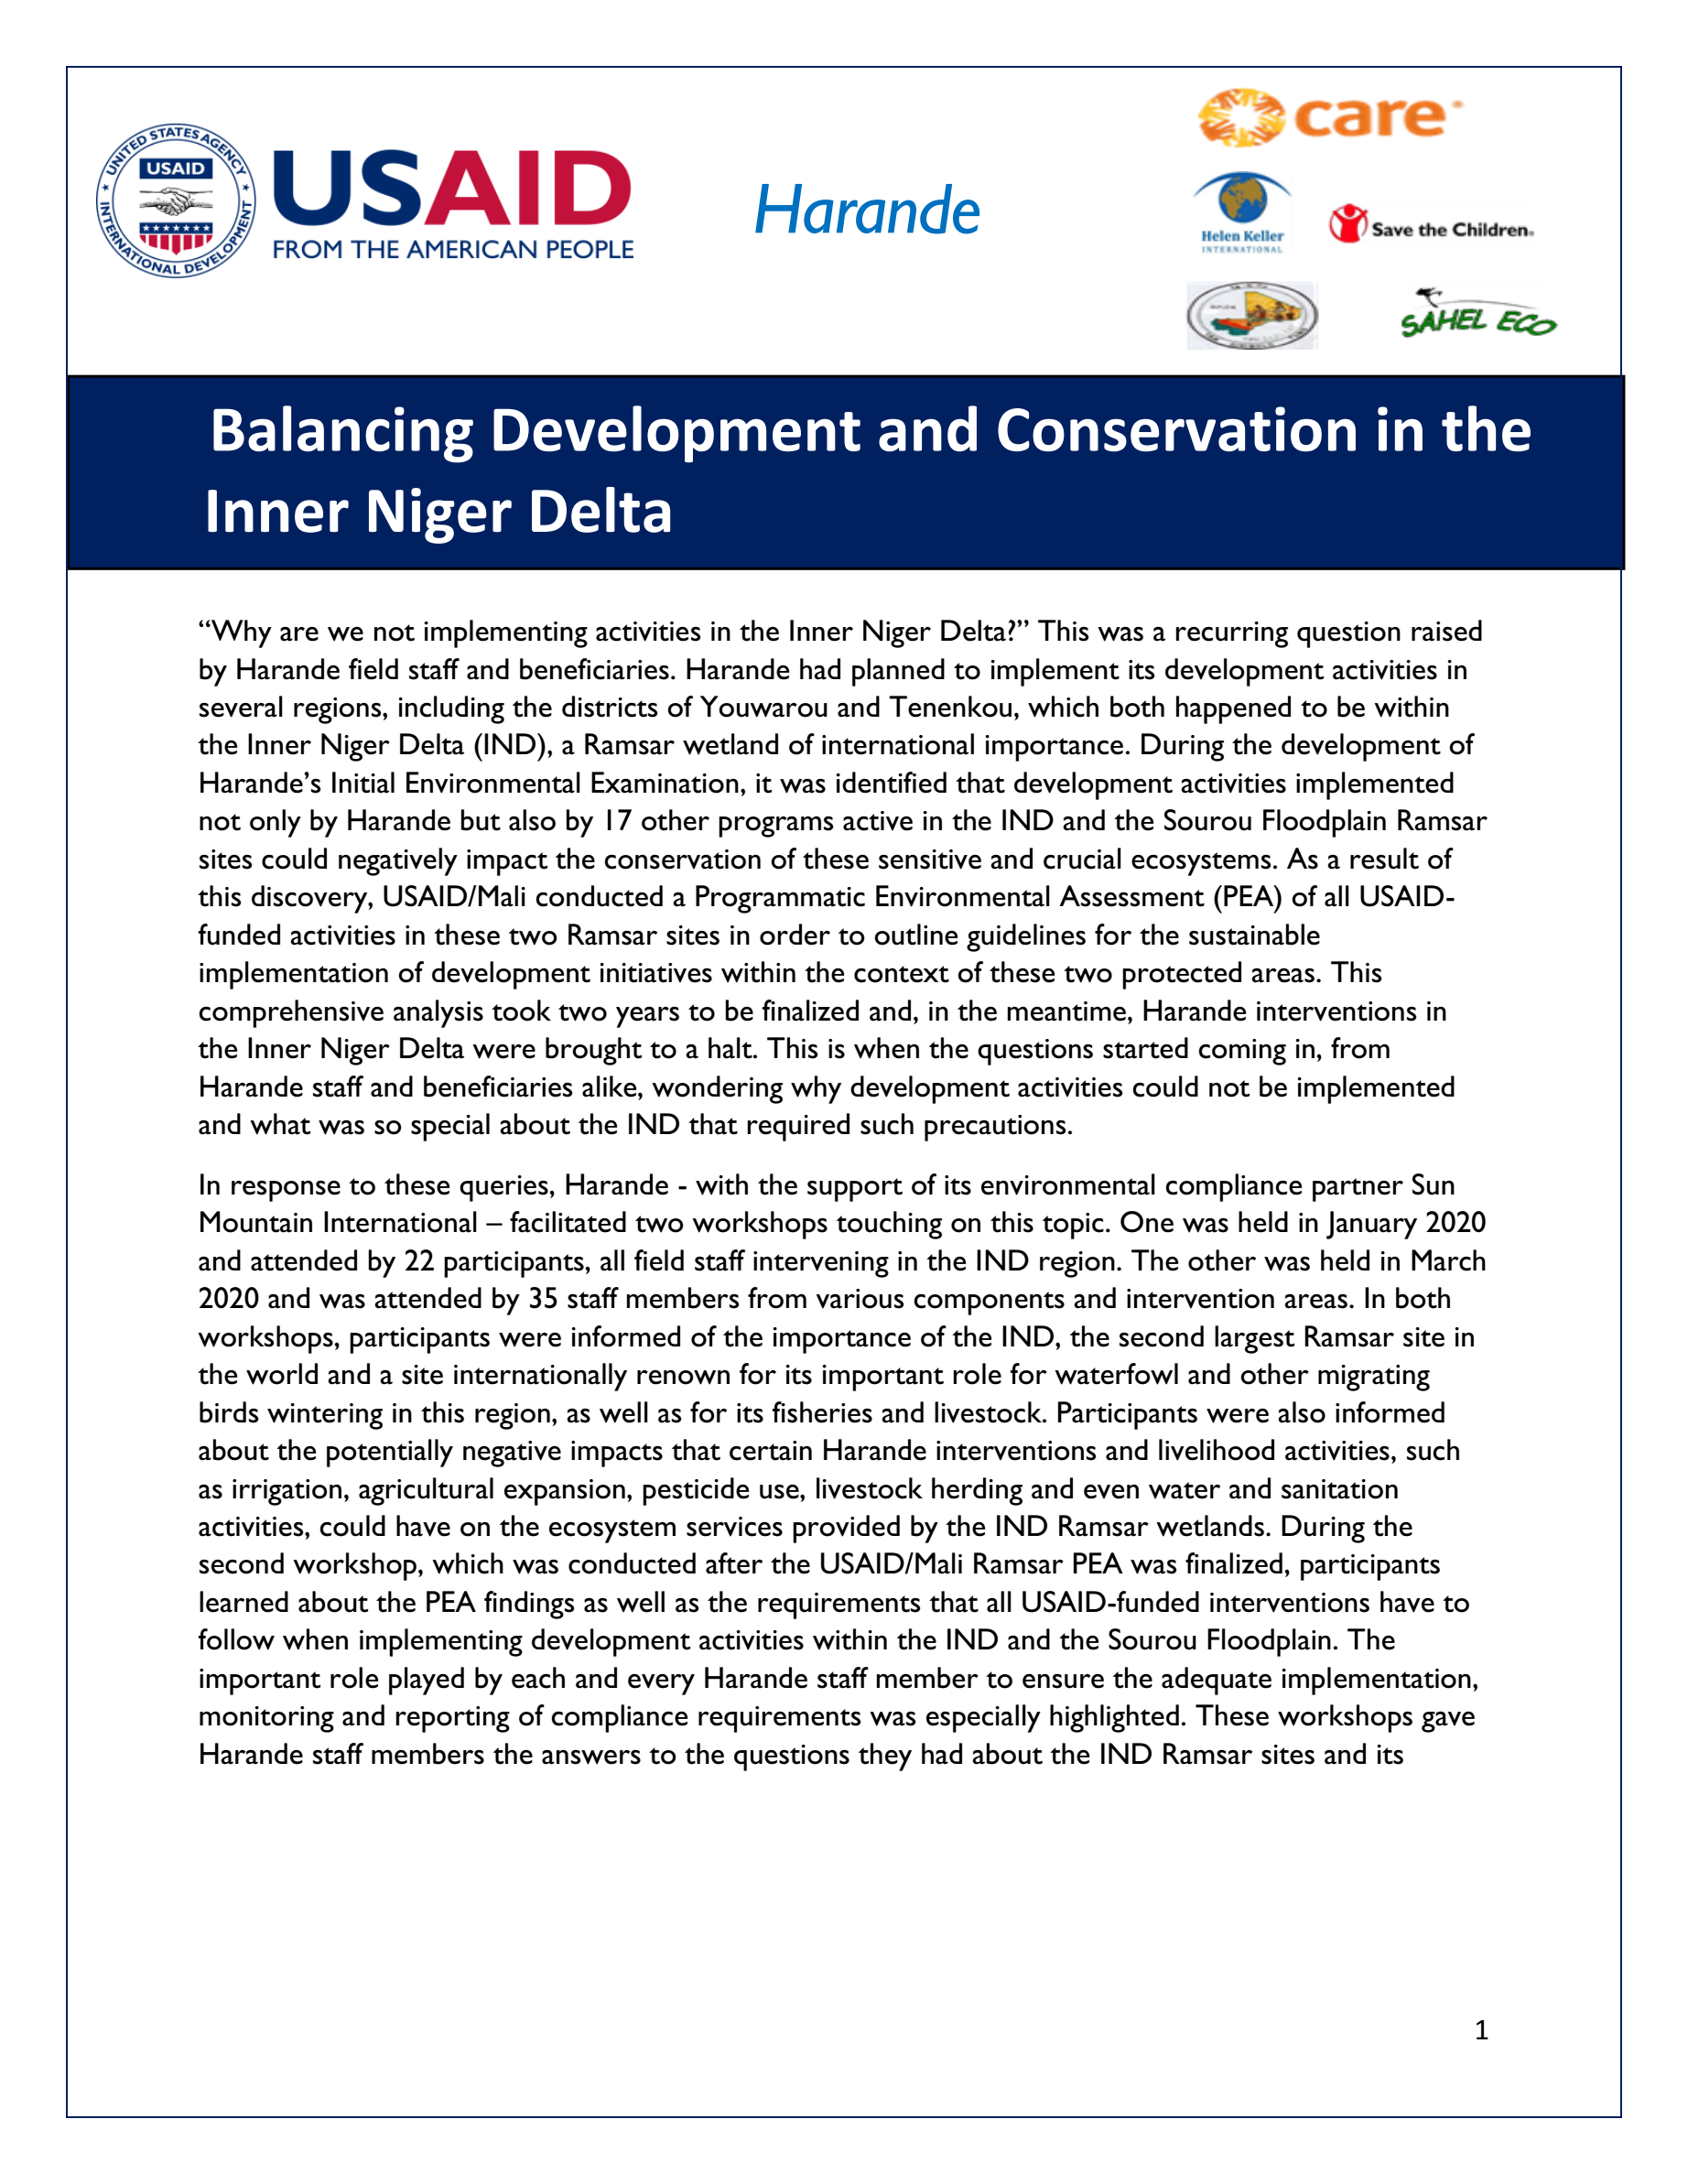 Balancing Development and Conservation in the Inner Niger Delta - Harande